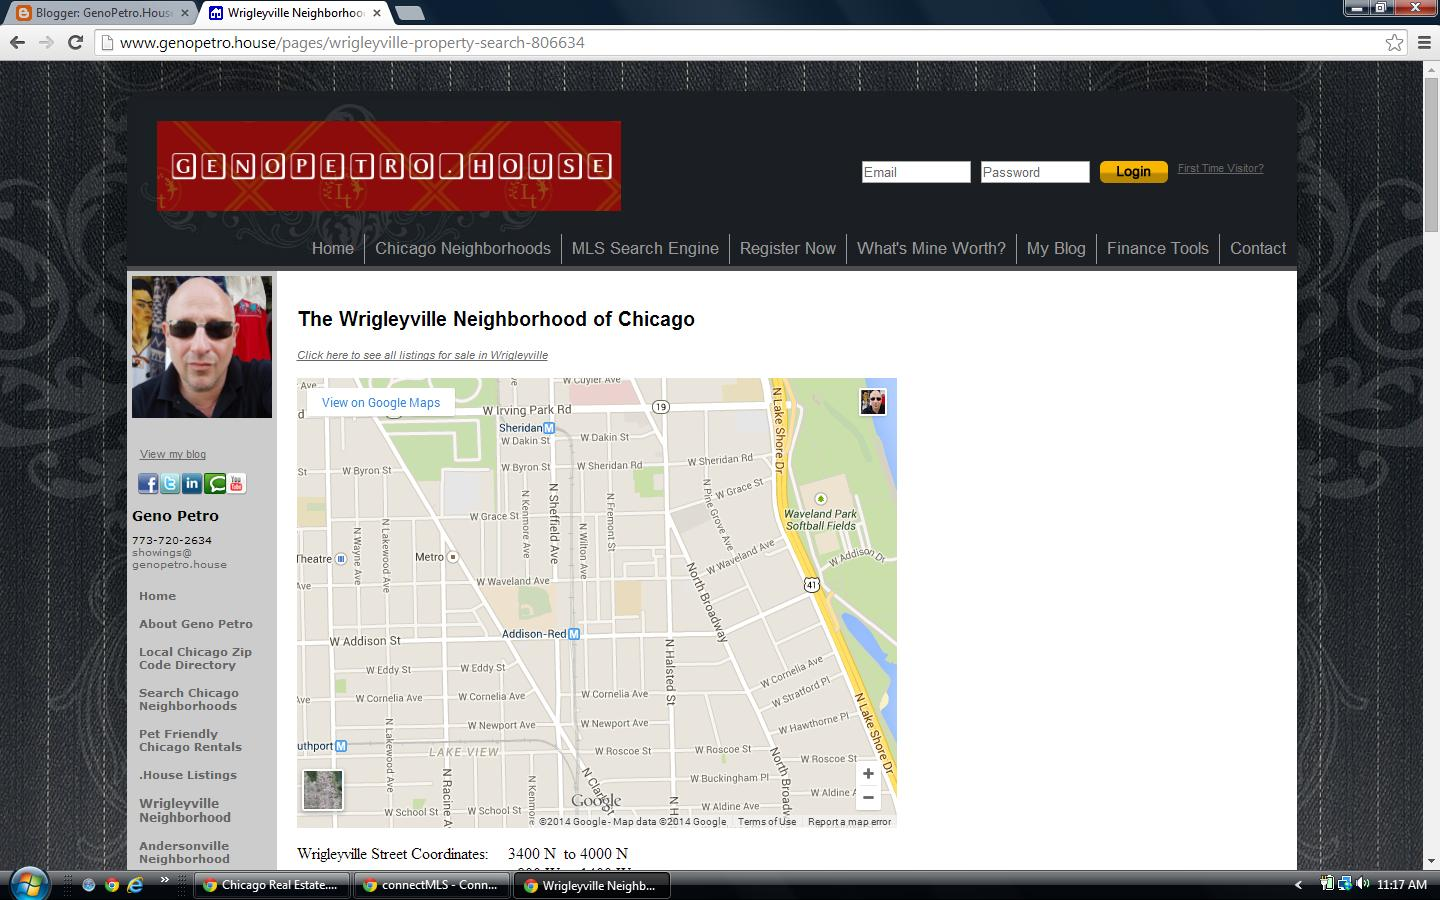 Wrigleyville neighborhood page screenshot